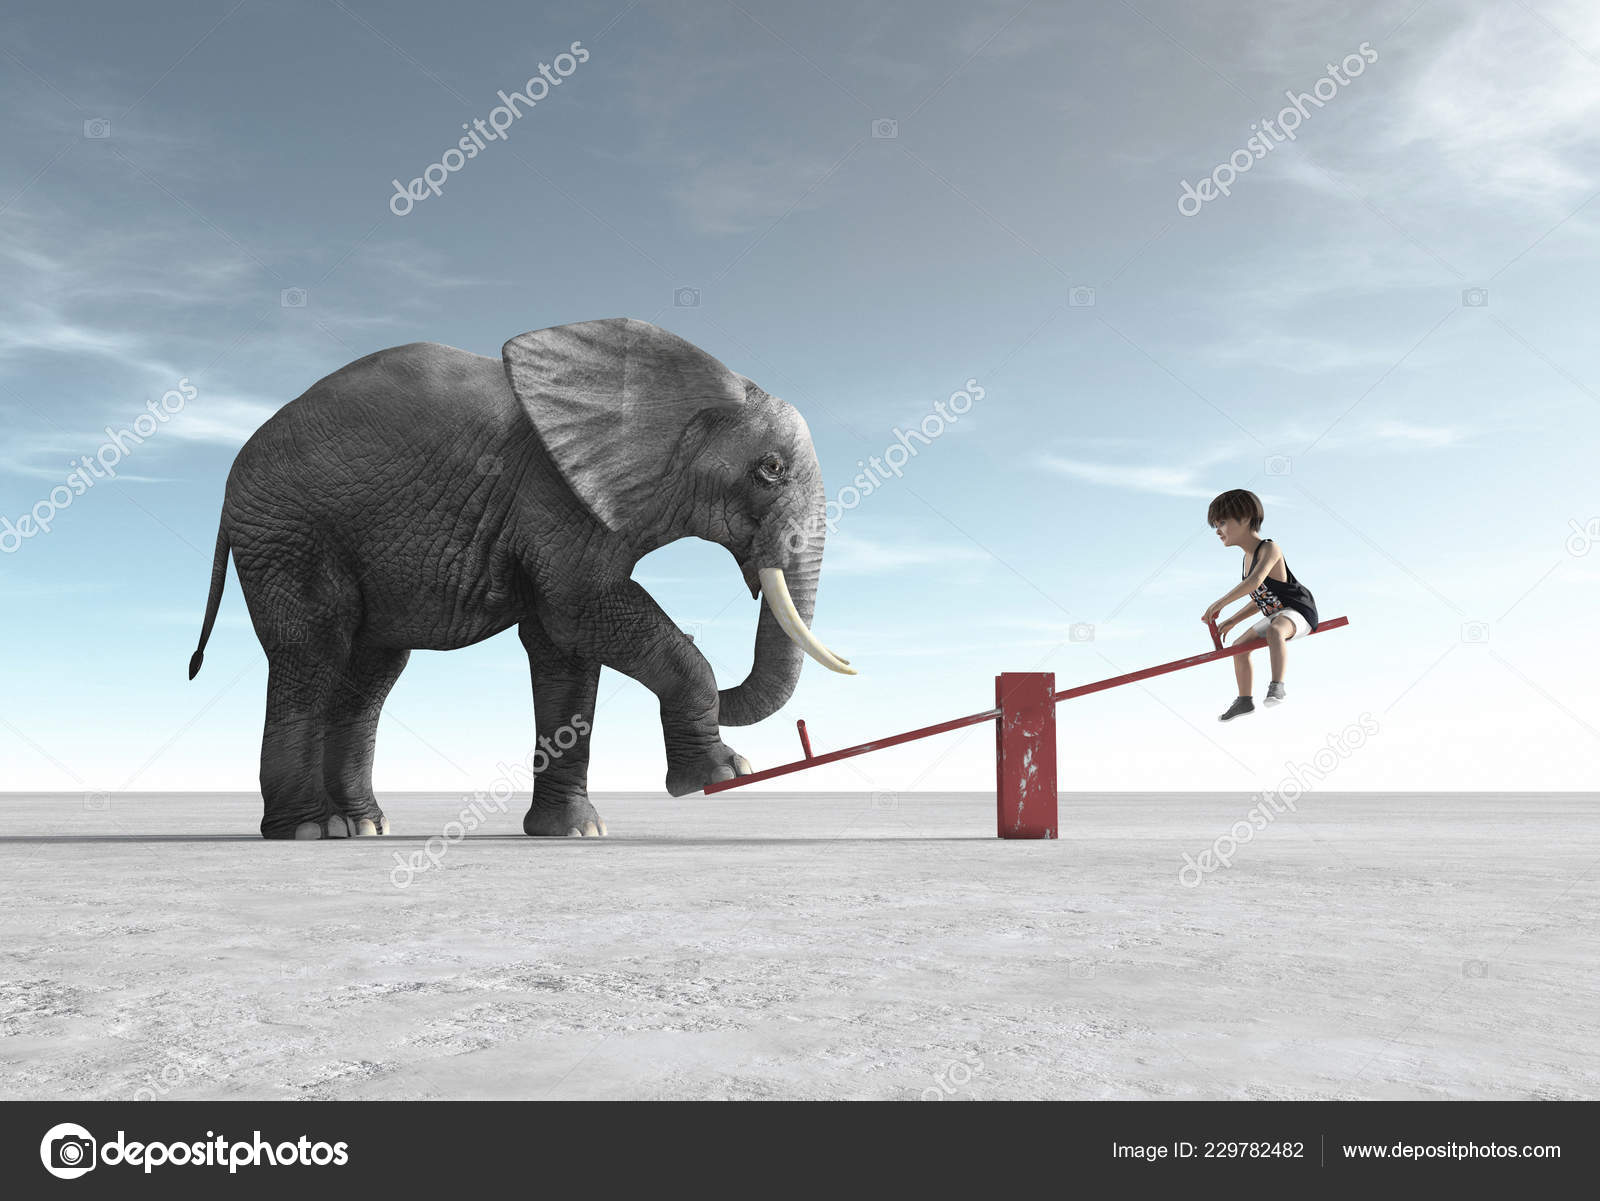 Child Rocking Chair Elephant Render Illustration Stock